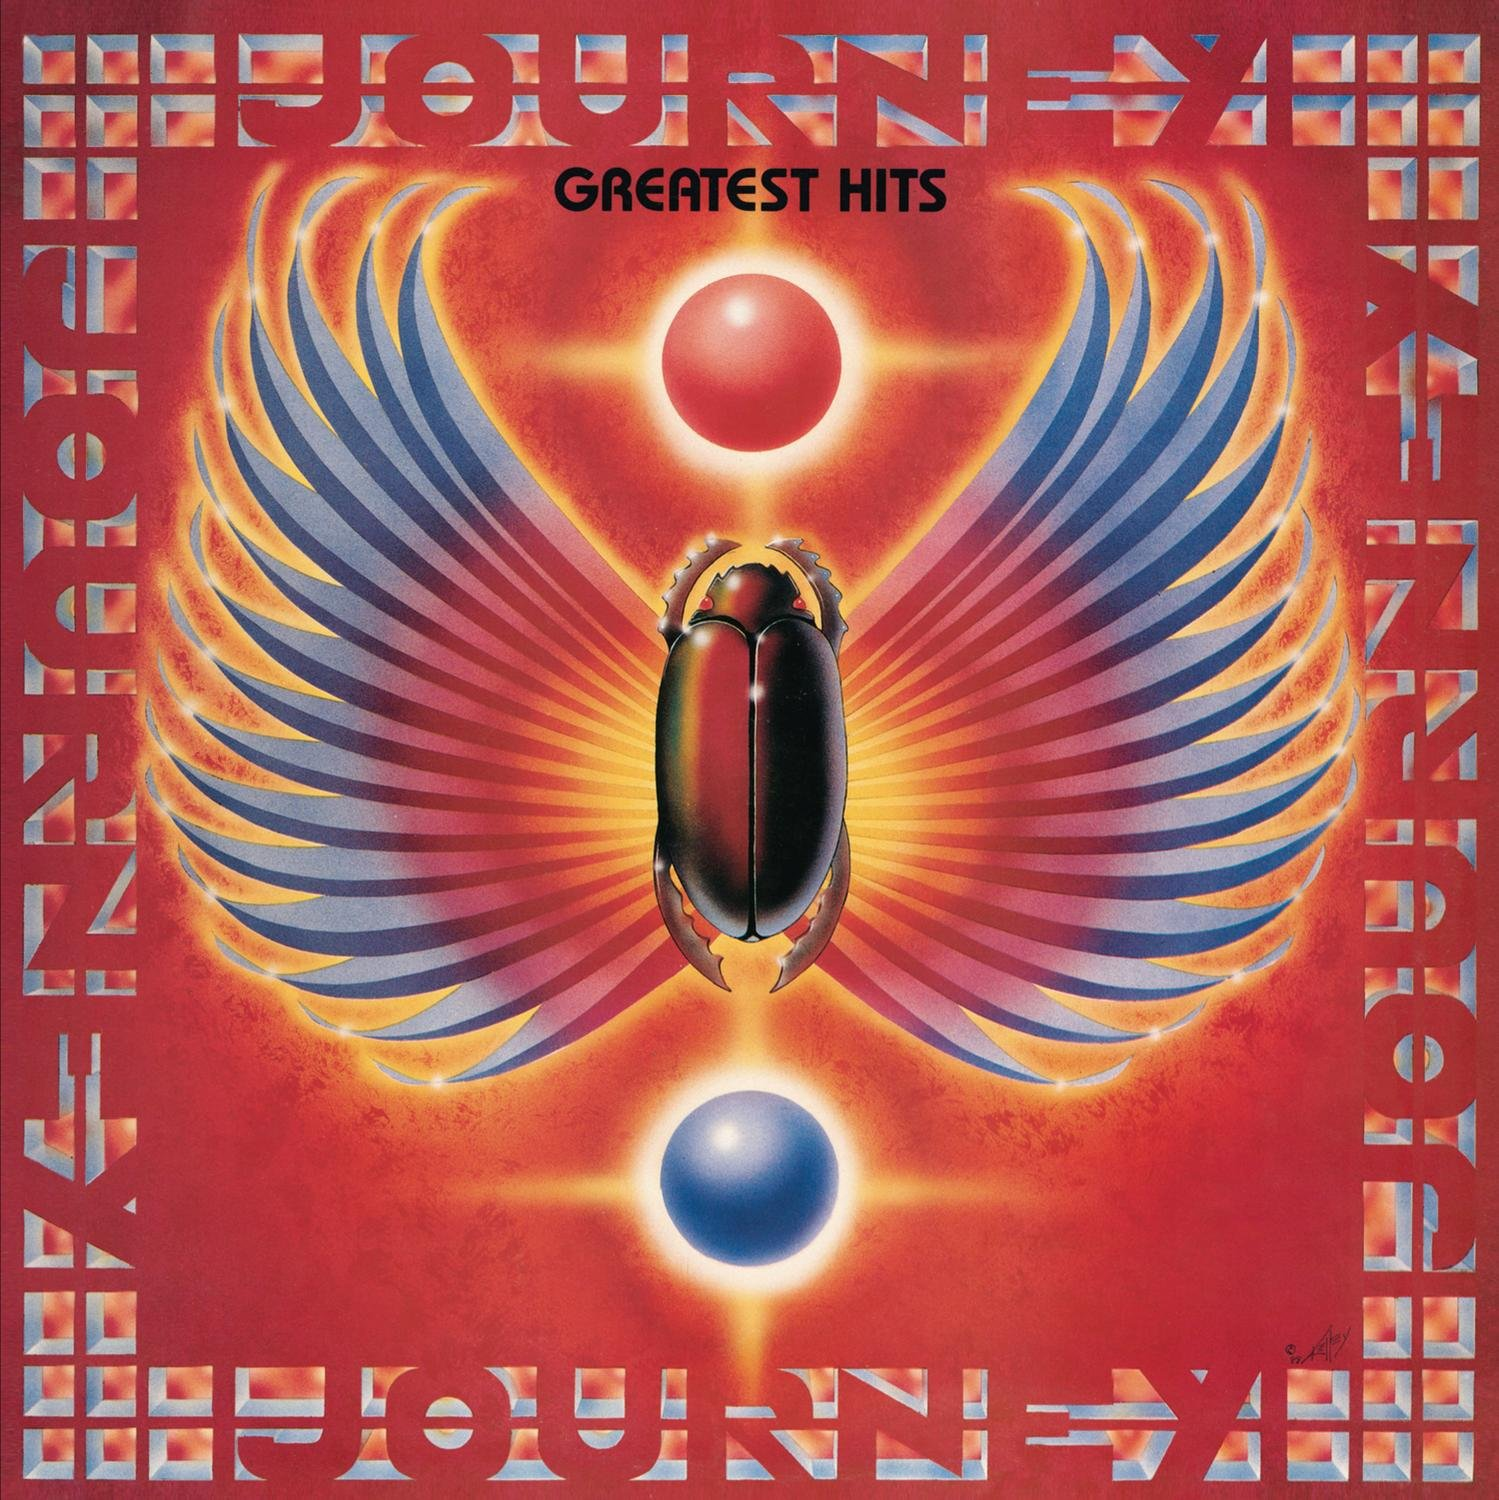 Journey's Greatest Hits by Legacy